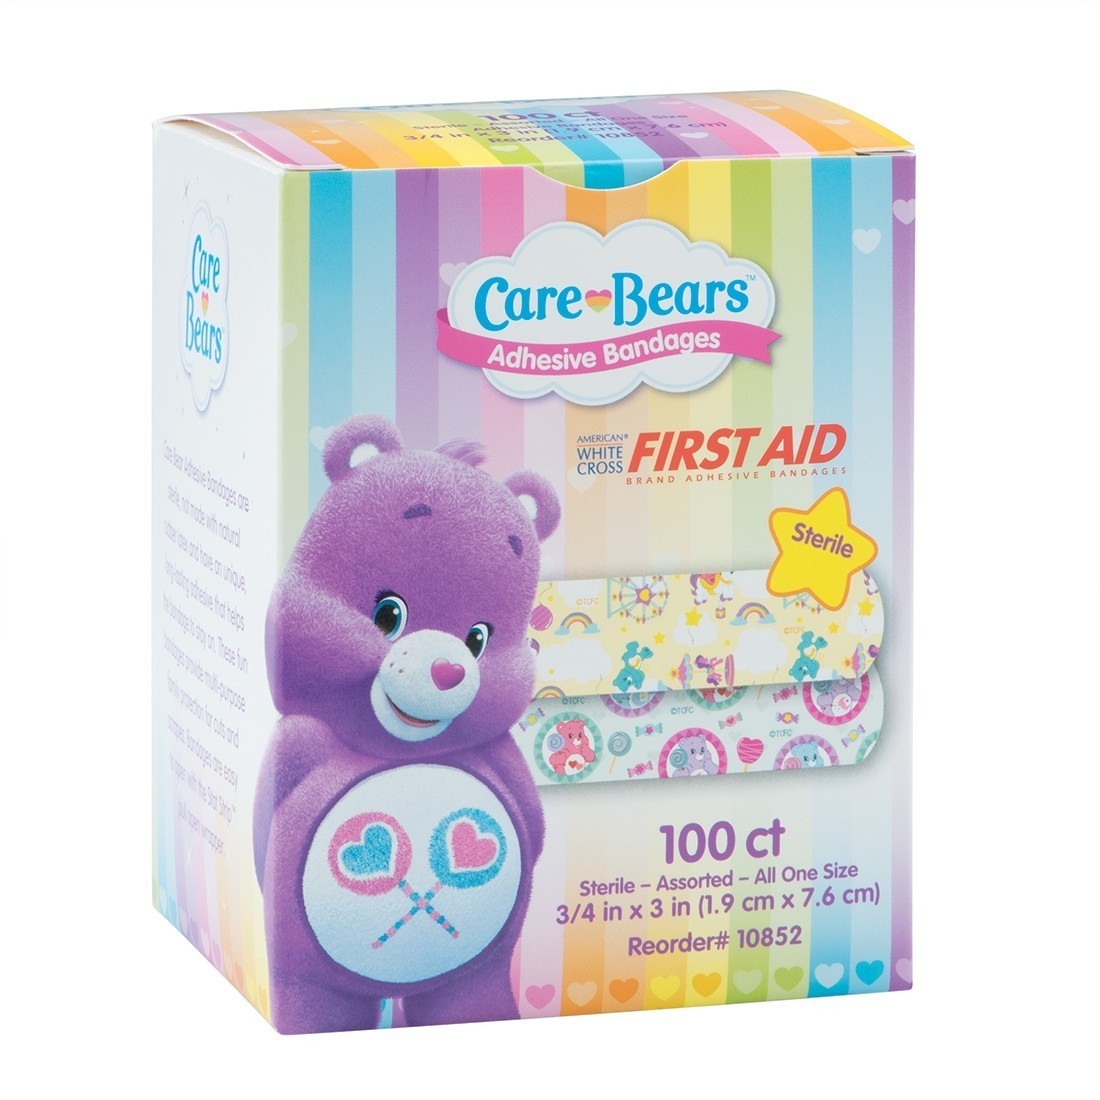 First Aid Care Bears Bandages [image]